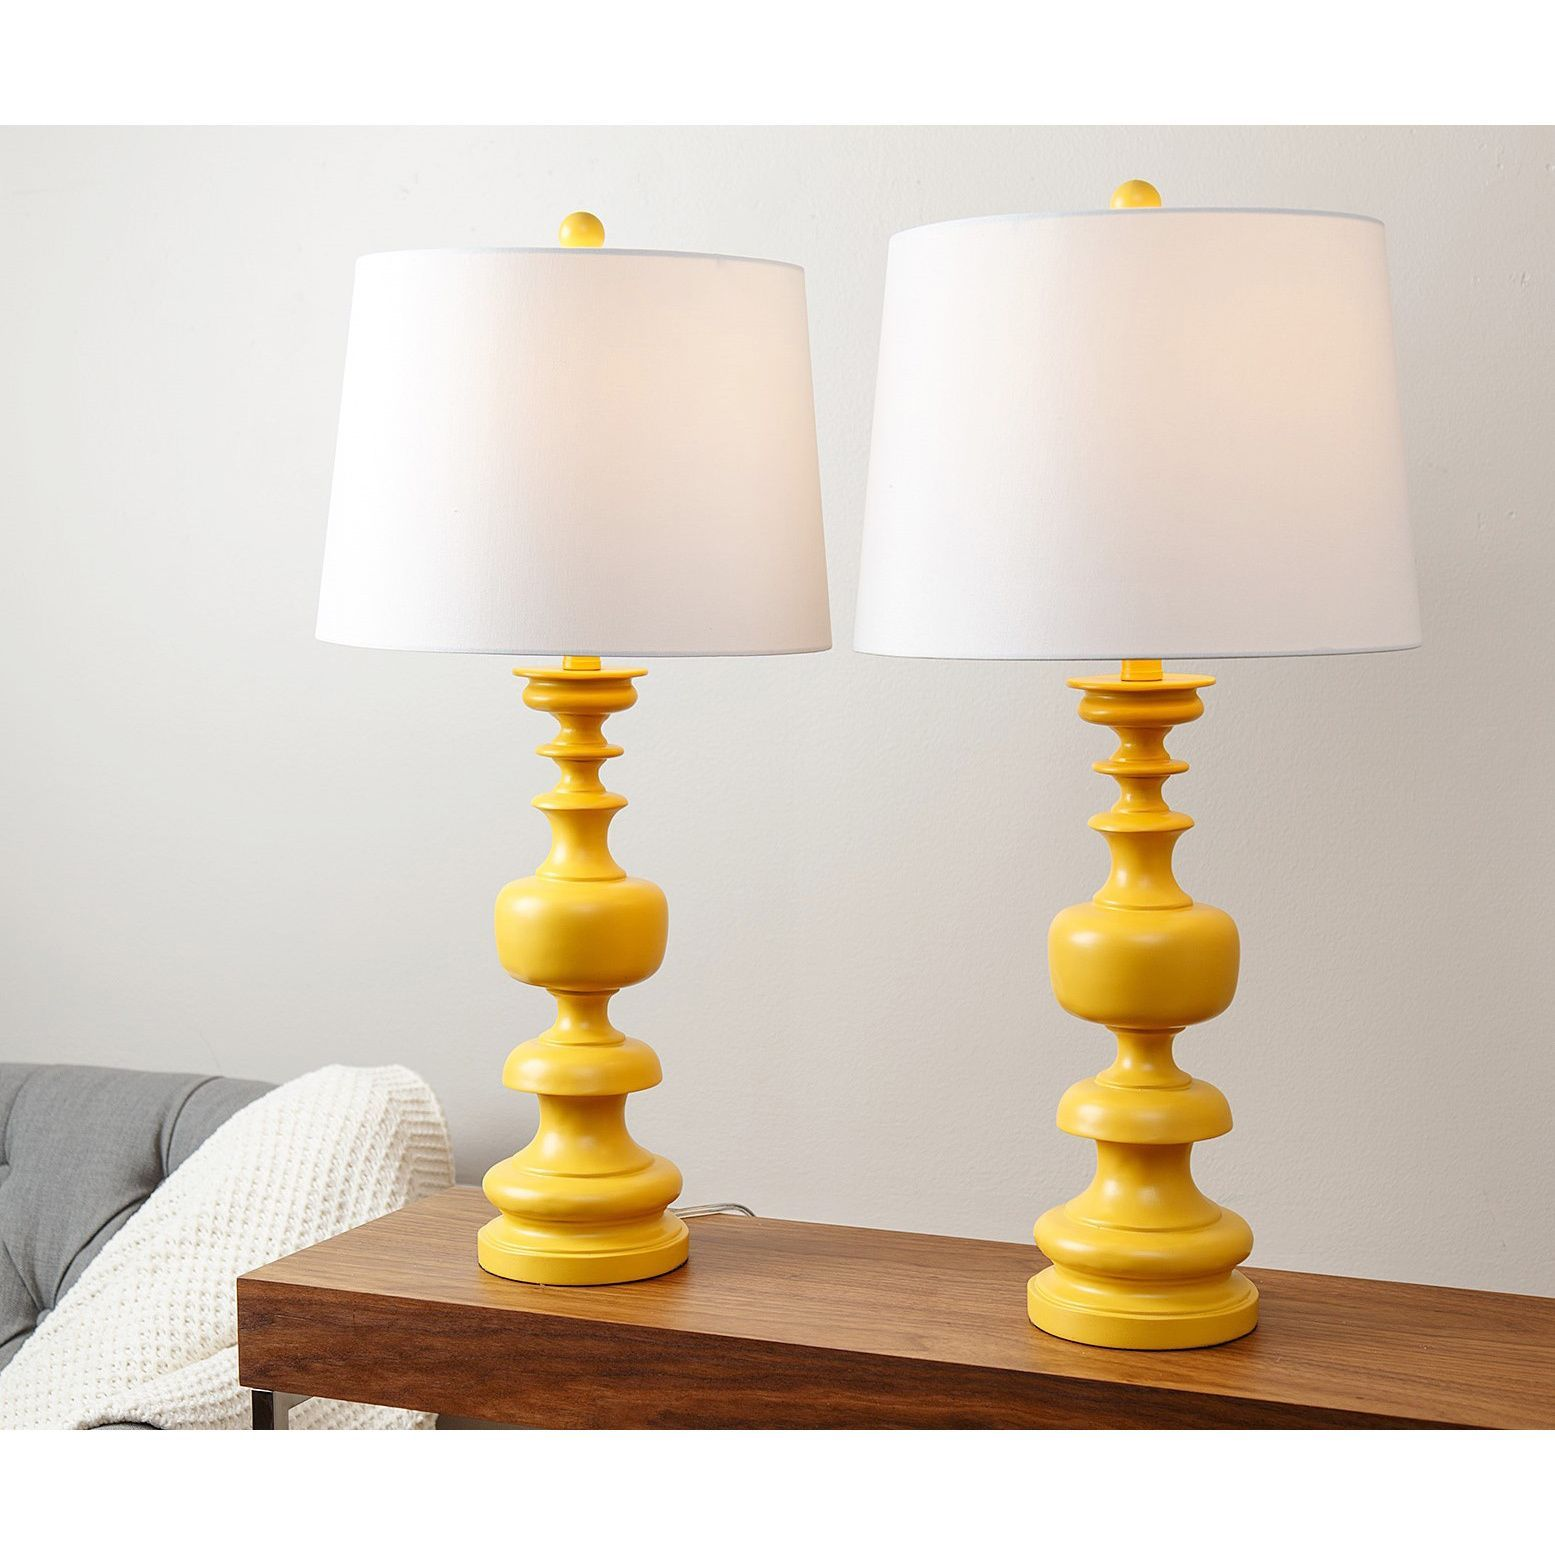 Abbyson living alexis yellow spiral table lamp set of 2 abbyson living alexis yellow spiral table lamp set of 2 overstock shopping big discounts on abbyson living lamp sets aloadofball Choice Image